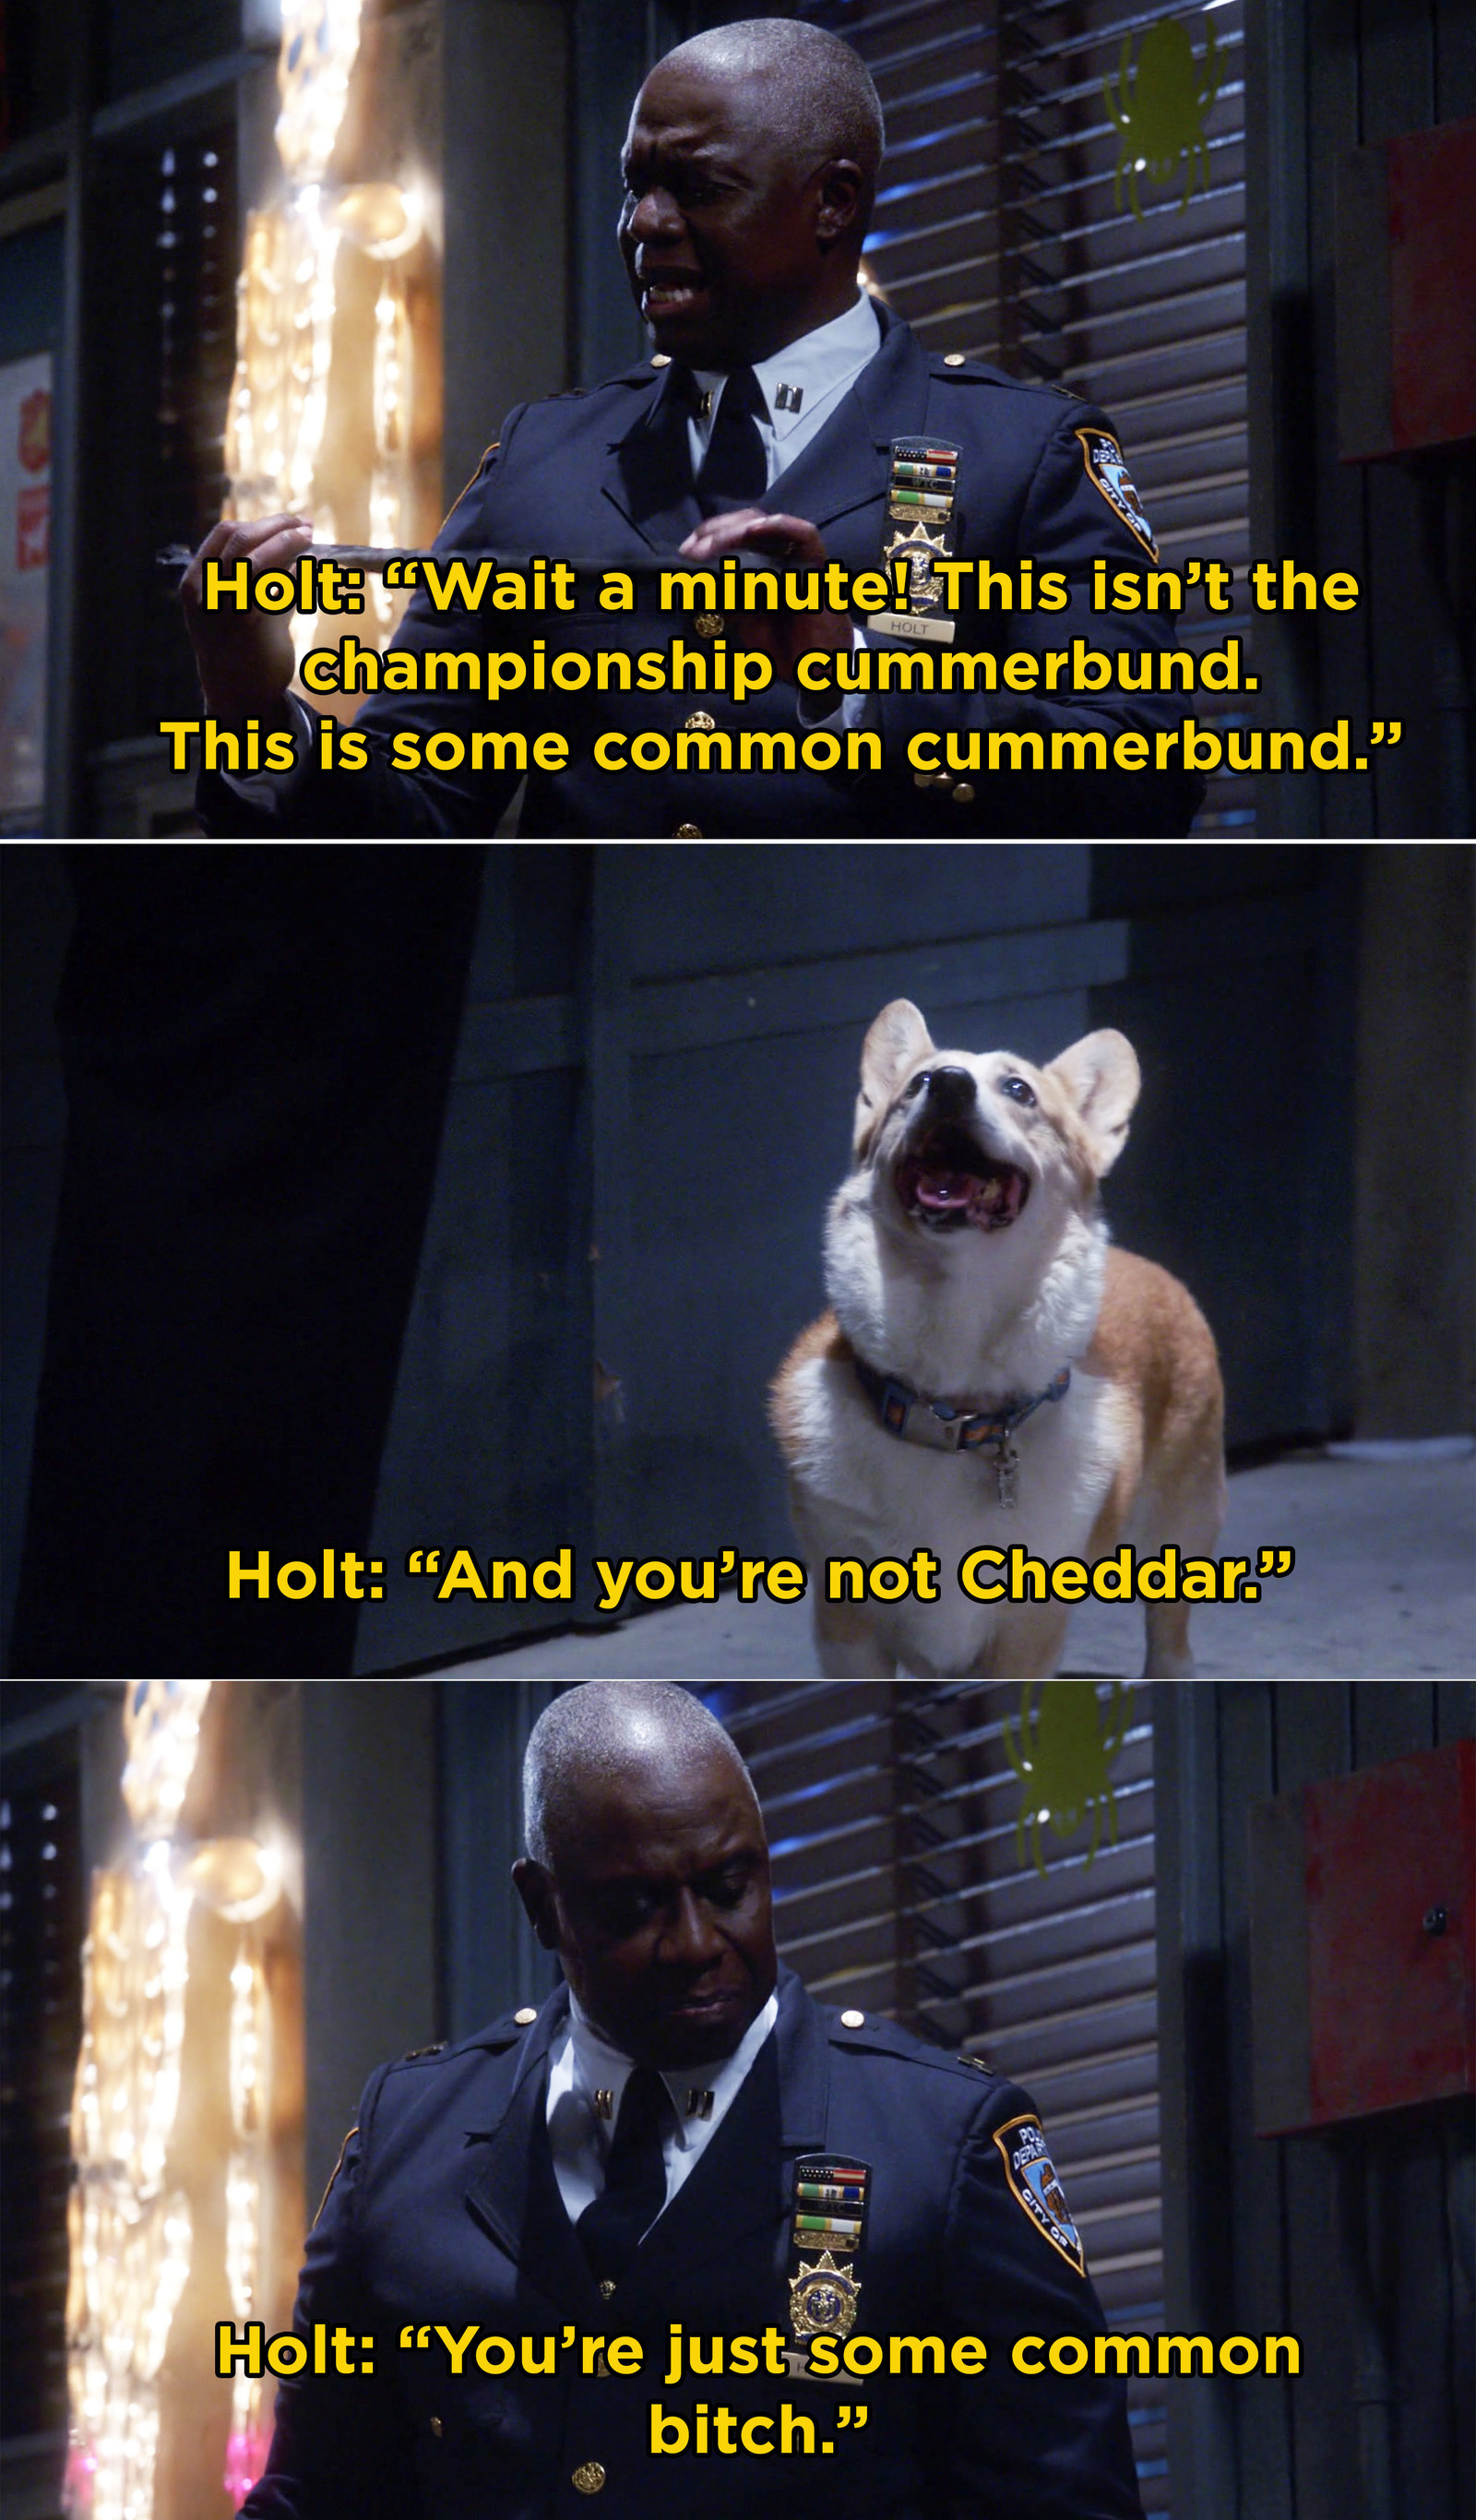 When Captain Holt wasn't fooled by this imposter Cheddar